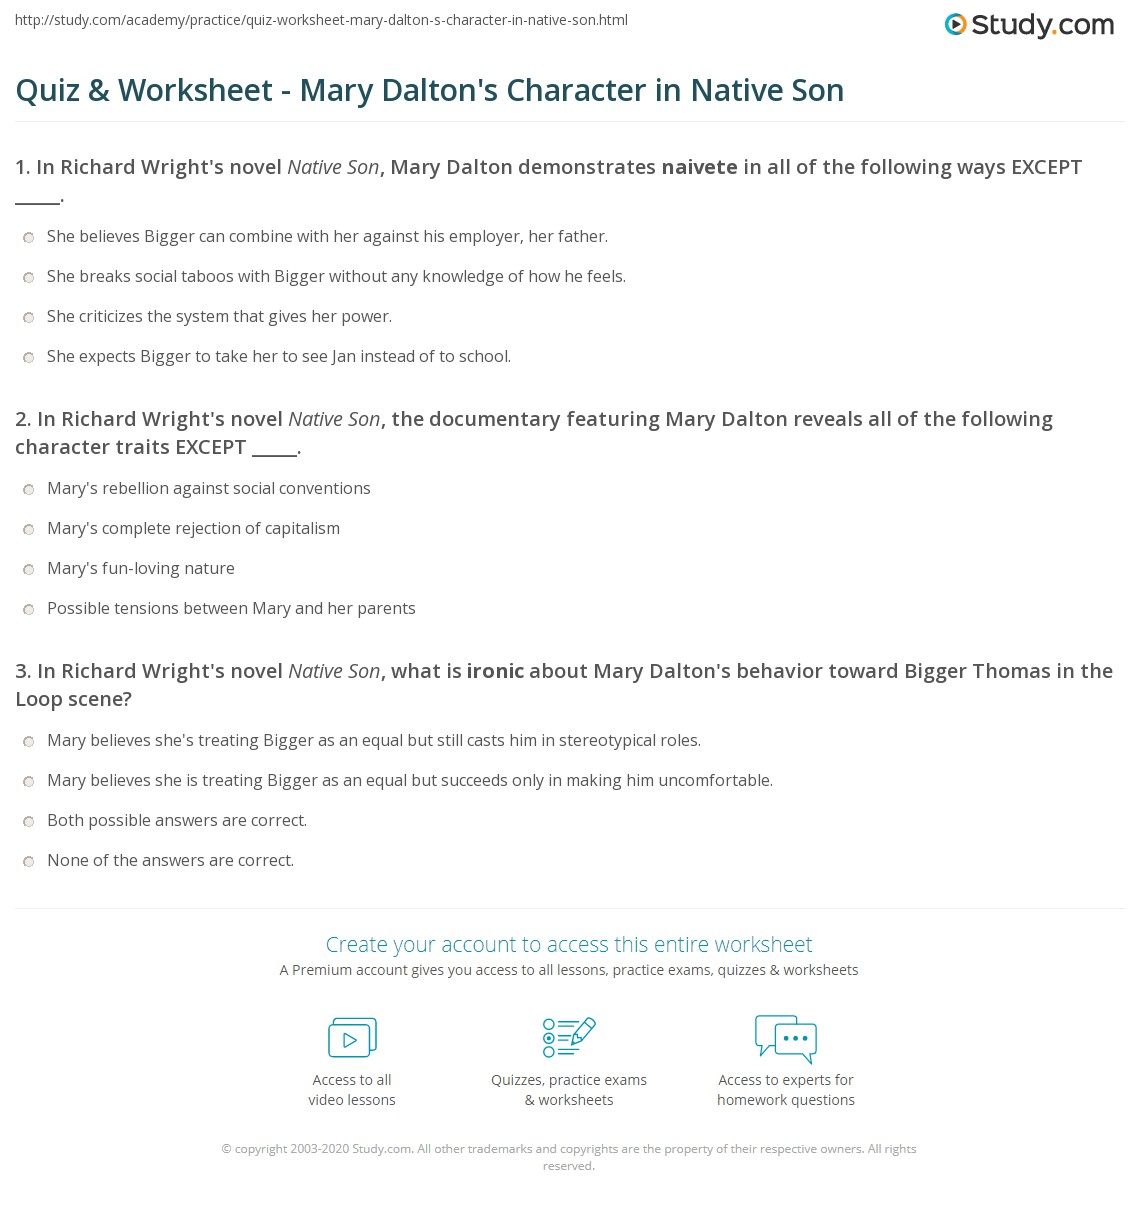 Quiz & Worksheet - Mary Dalton's Character in Native Son